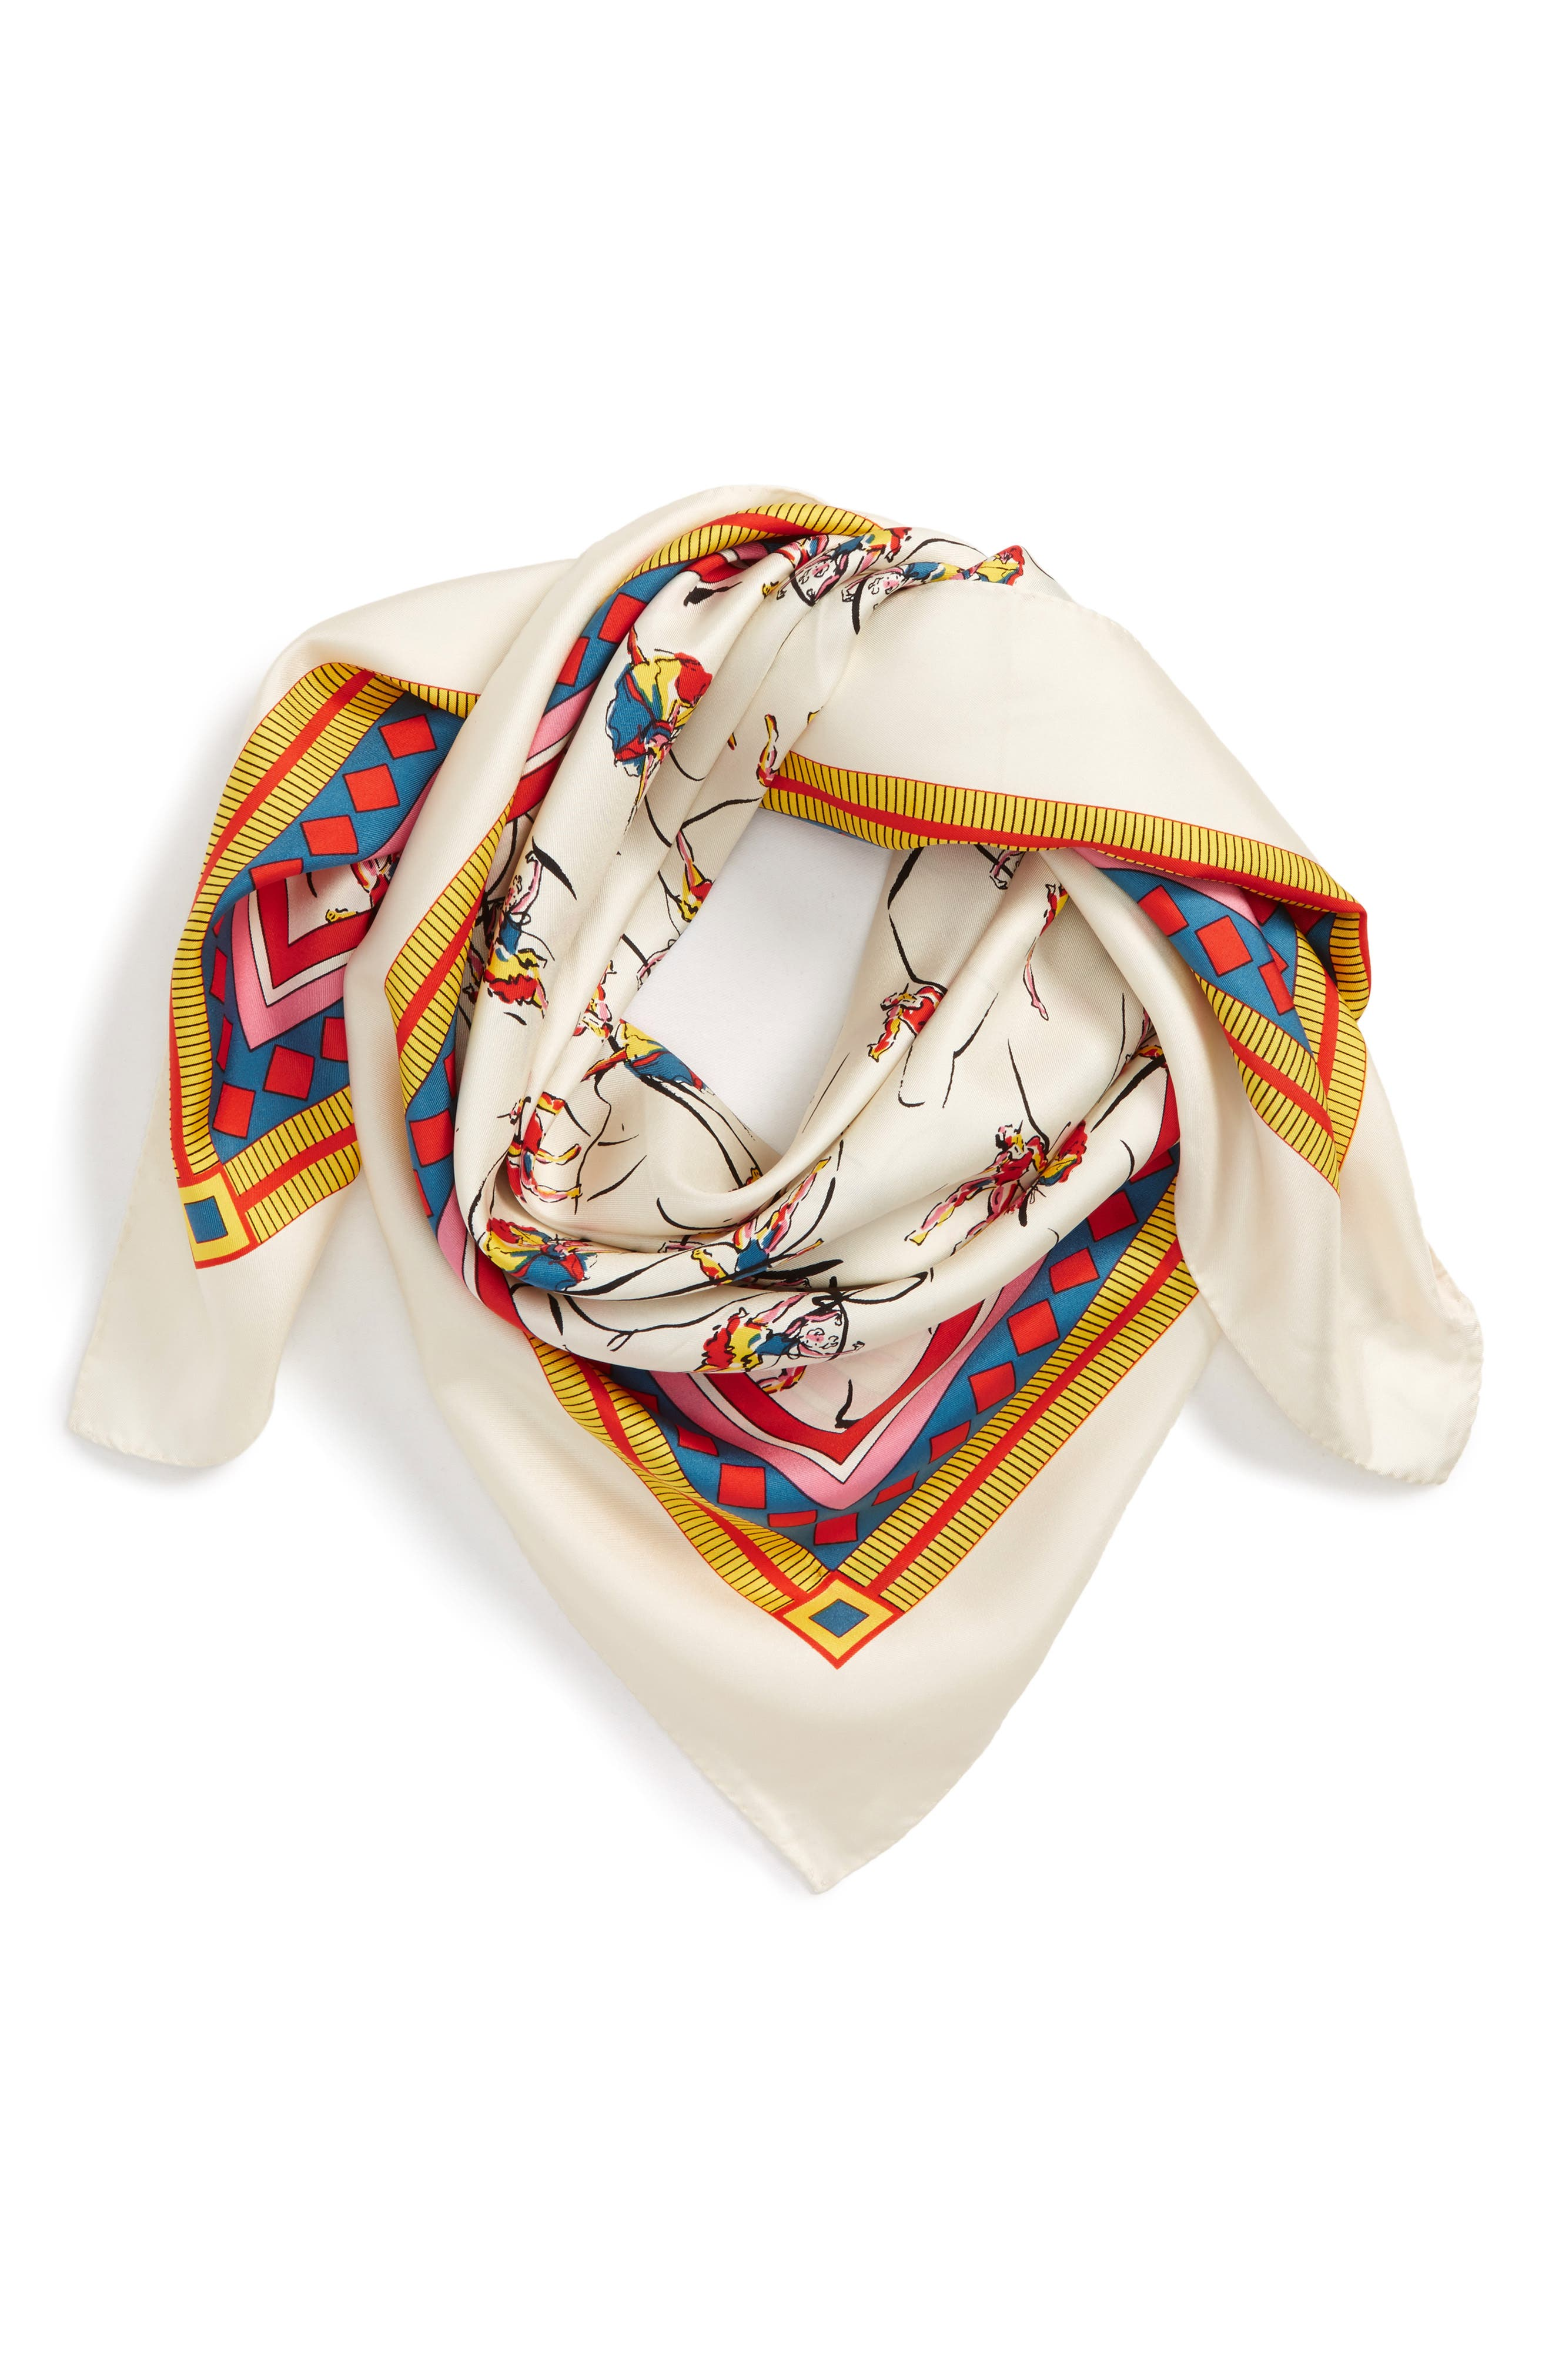 TORY BURCH, Dancers Silk Square Scarf, Main thumbnail 1, color, 900